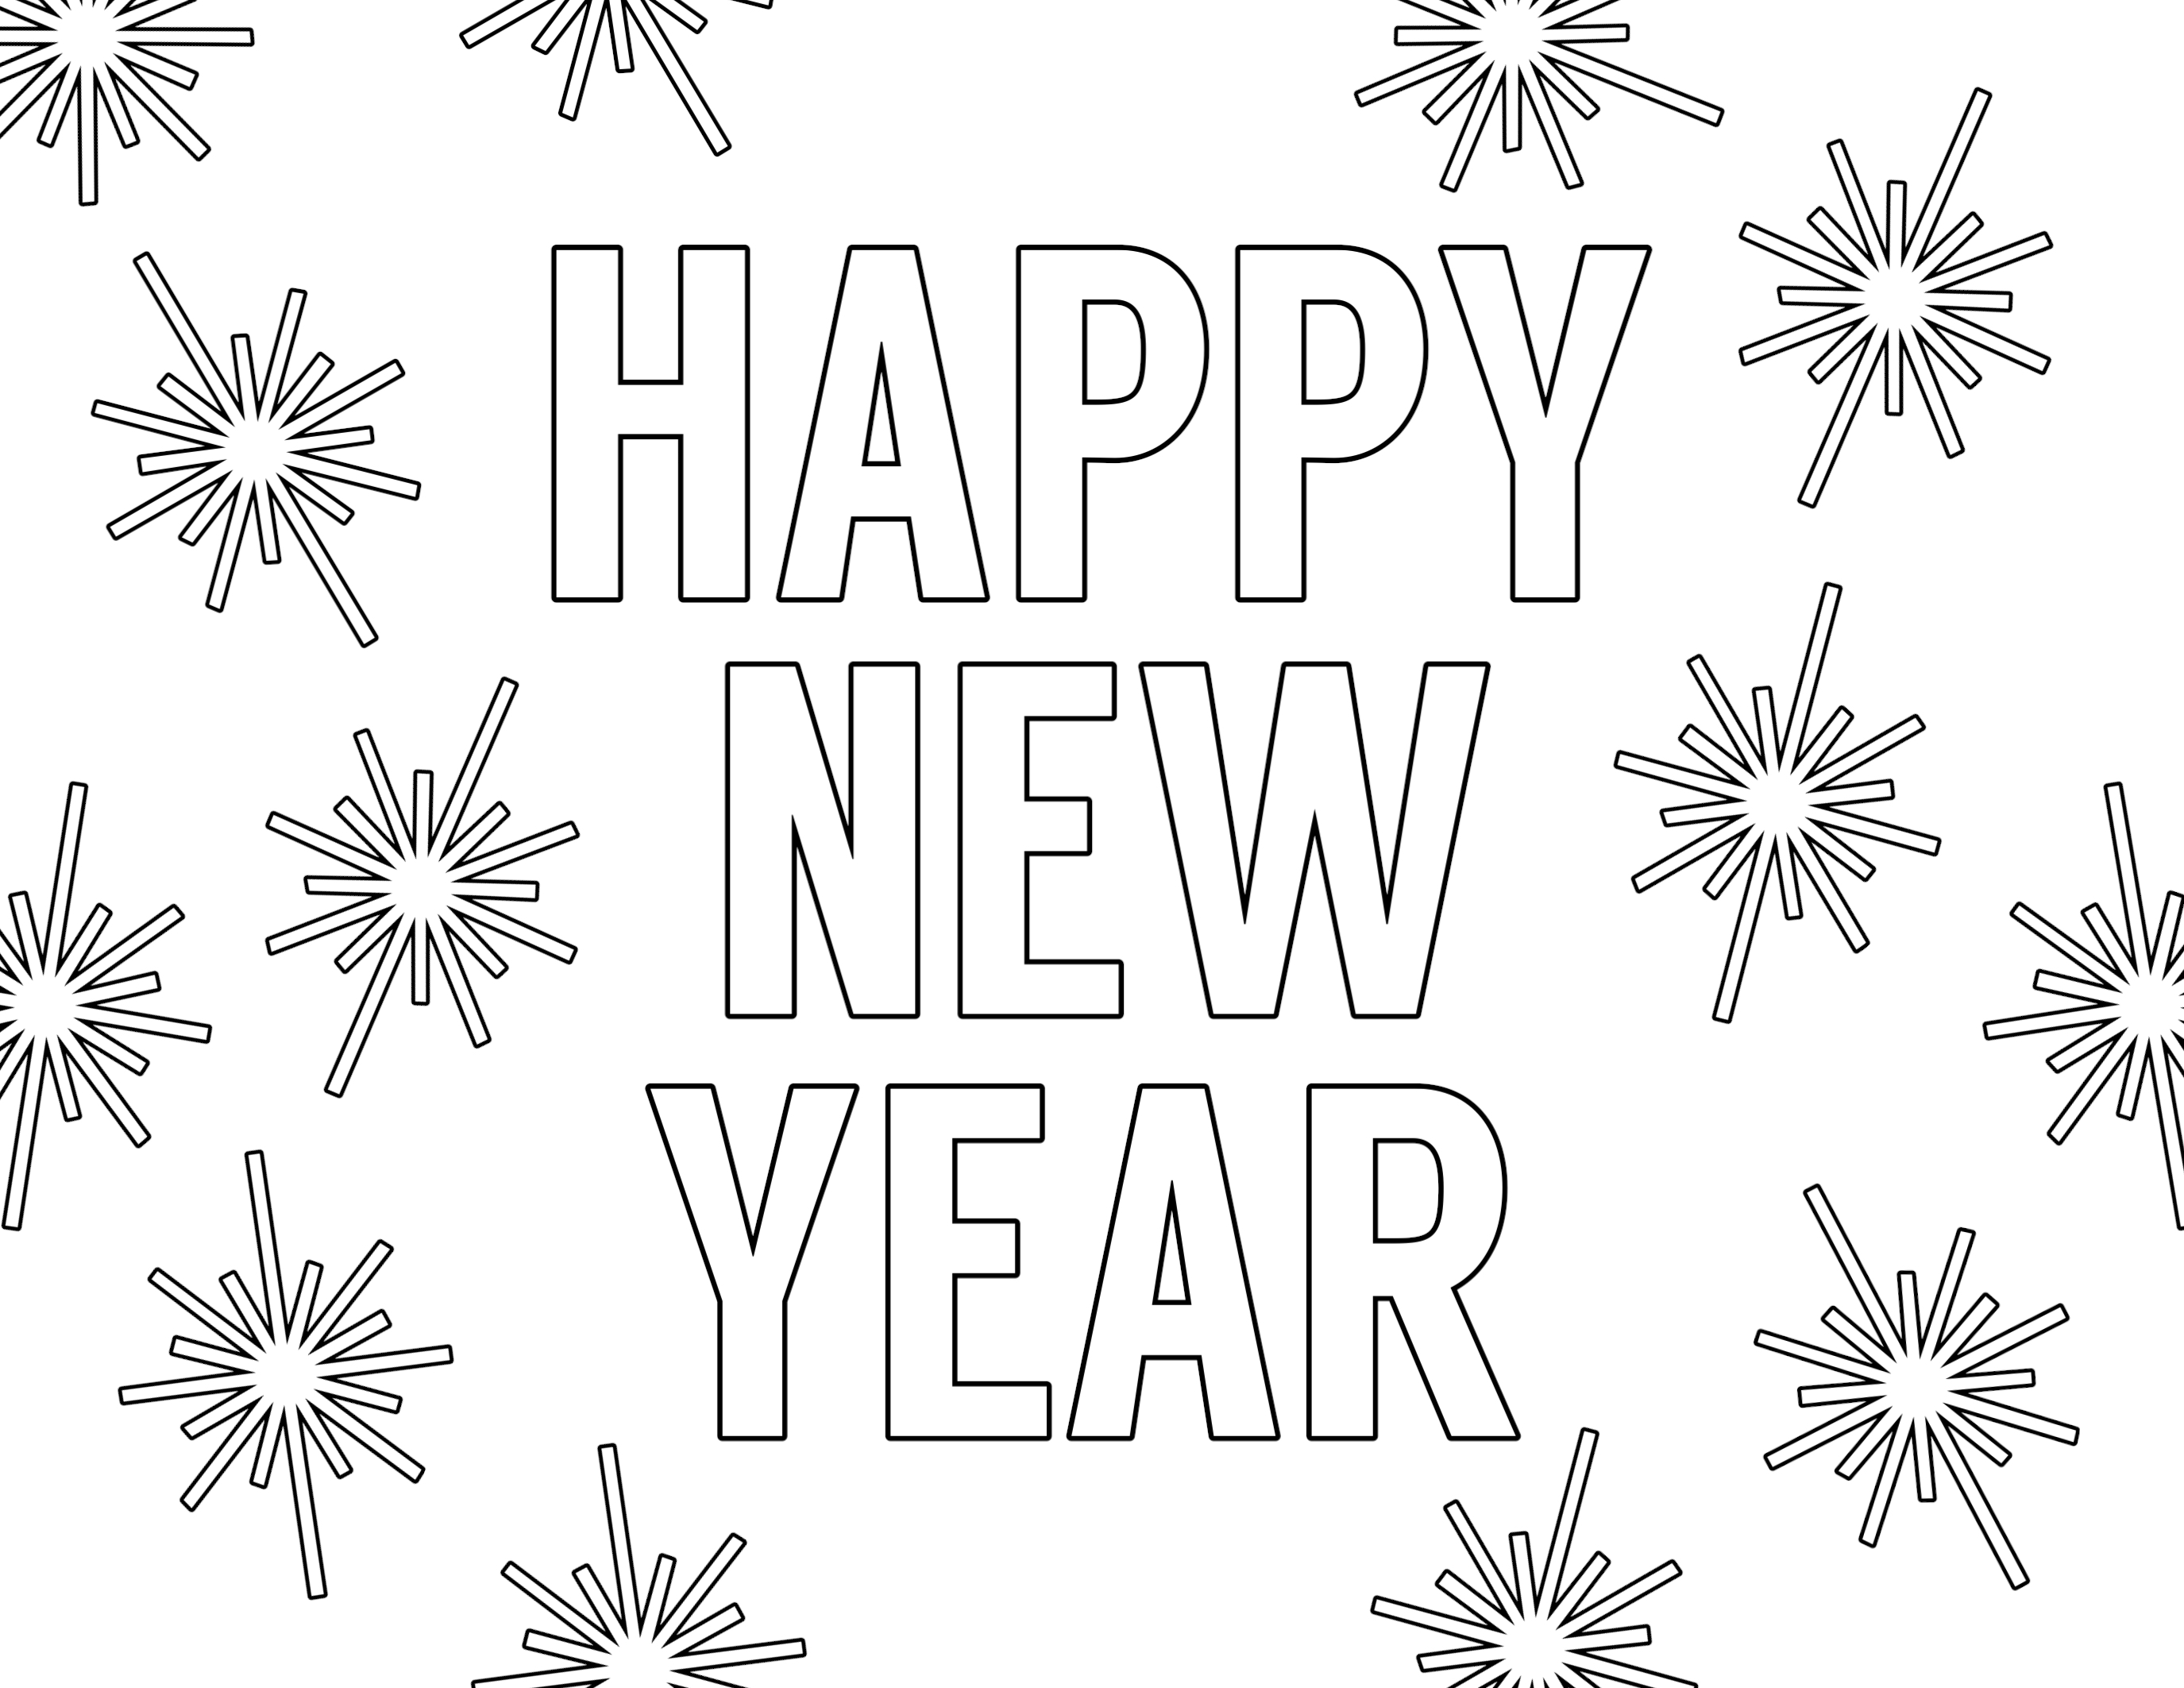 Happy new year free printable coloring page · 2019